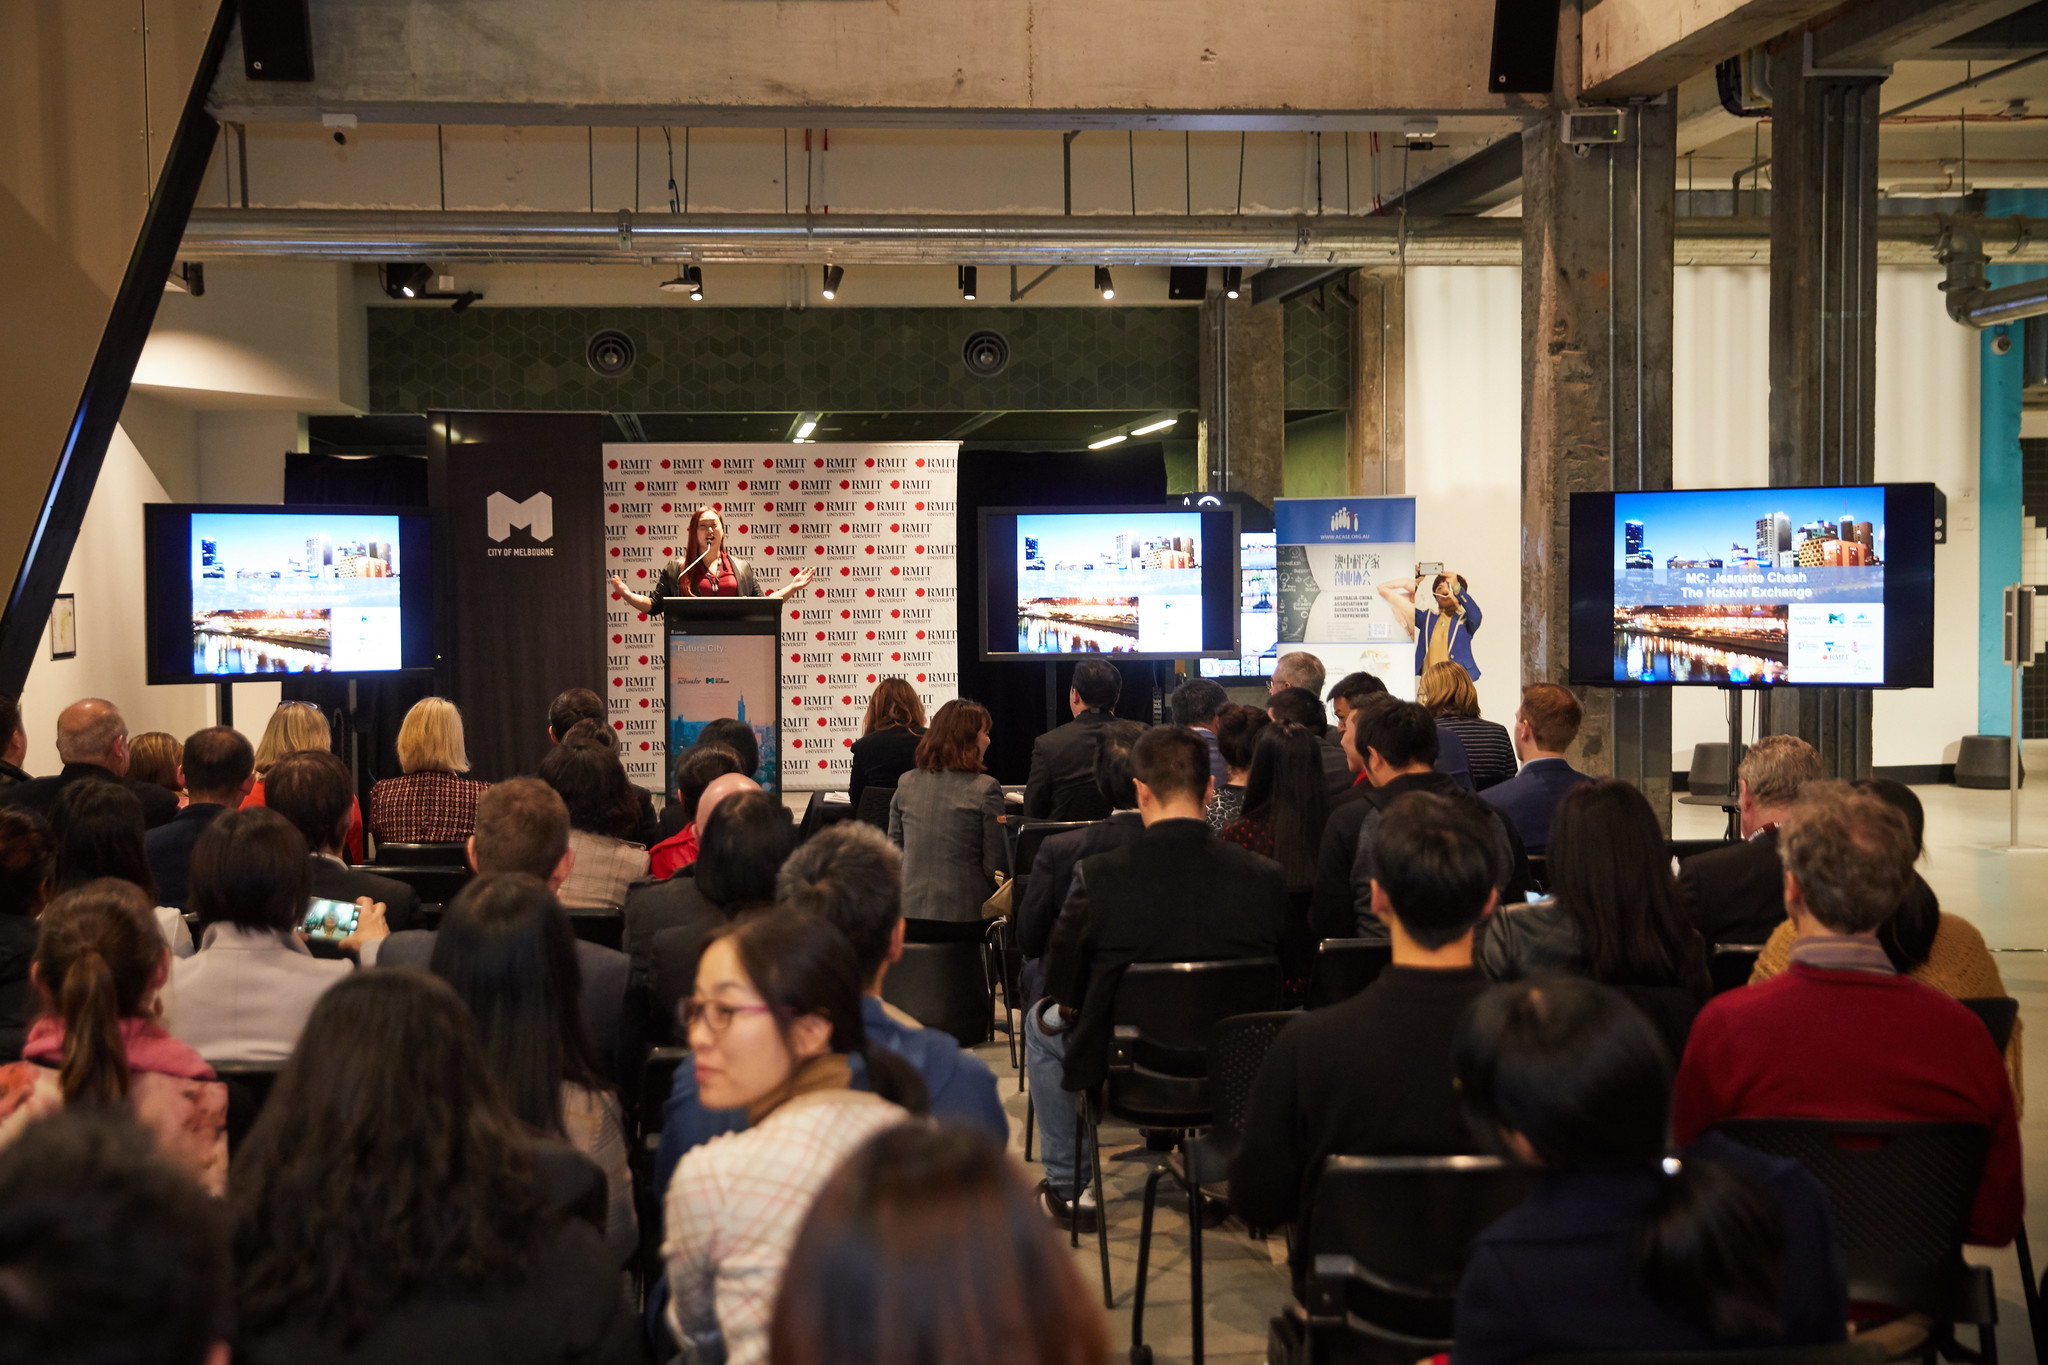 - MC duties at the Jiangsu-Victoria Startup Competition Final for the City of Melbourne & Nanjing, China. Venue: RMIT Media Room